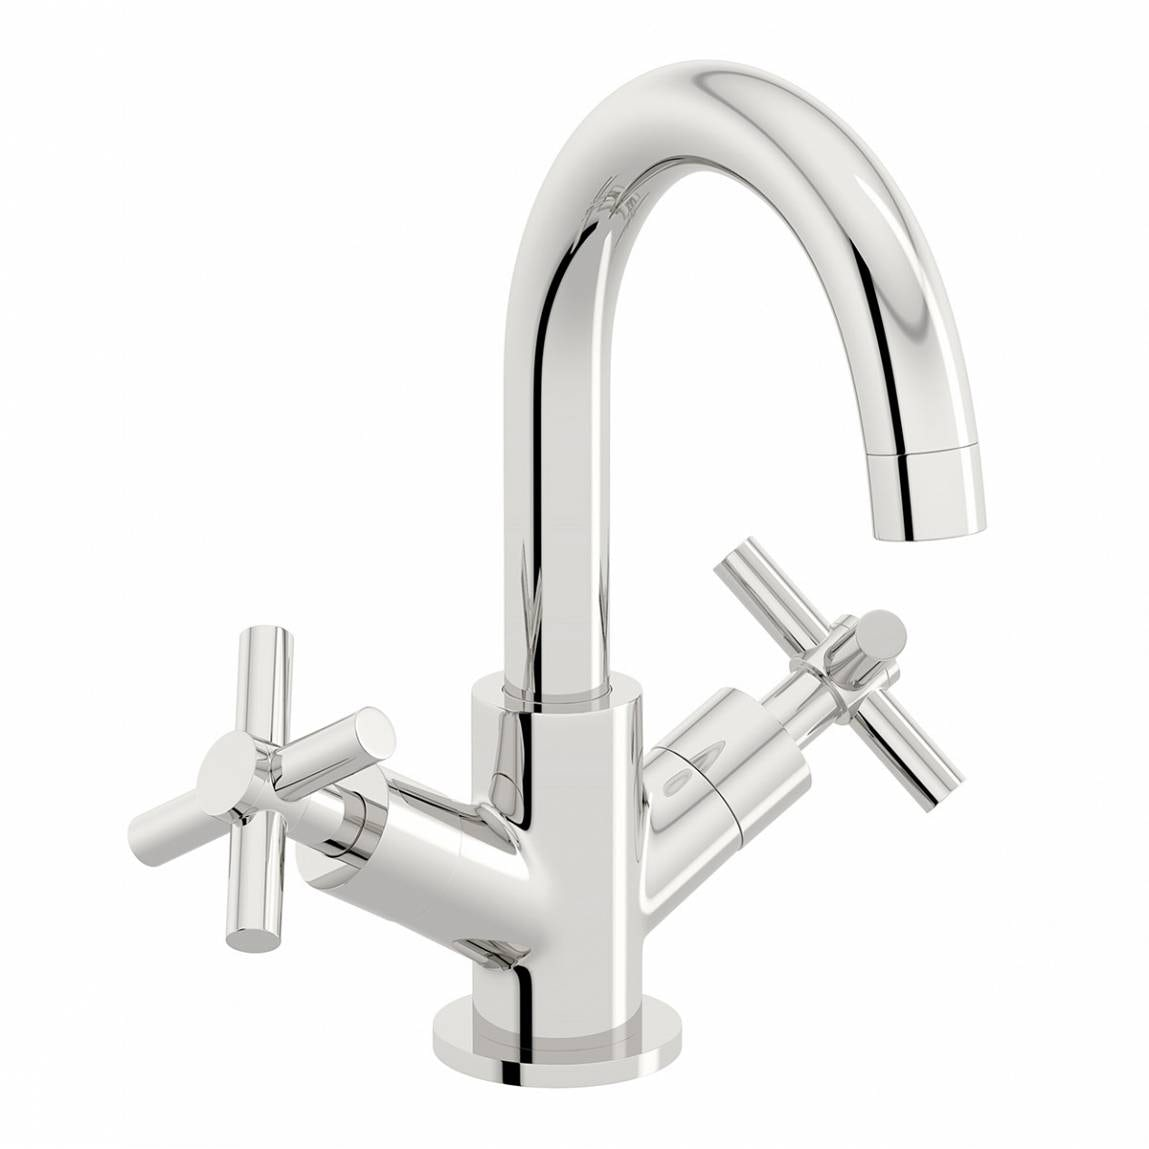 Mode Tate basin mixer tap